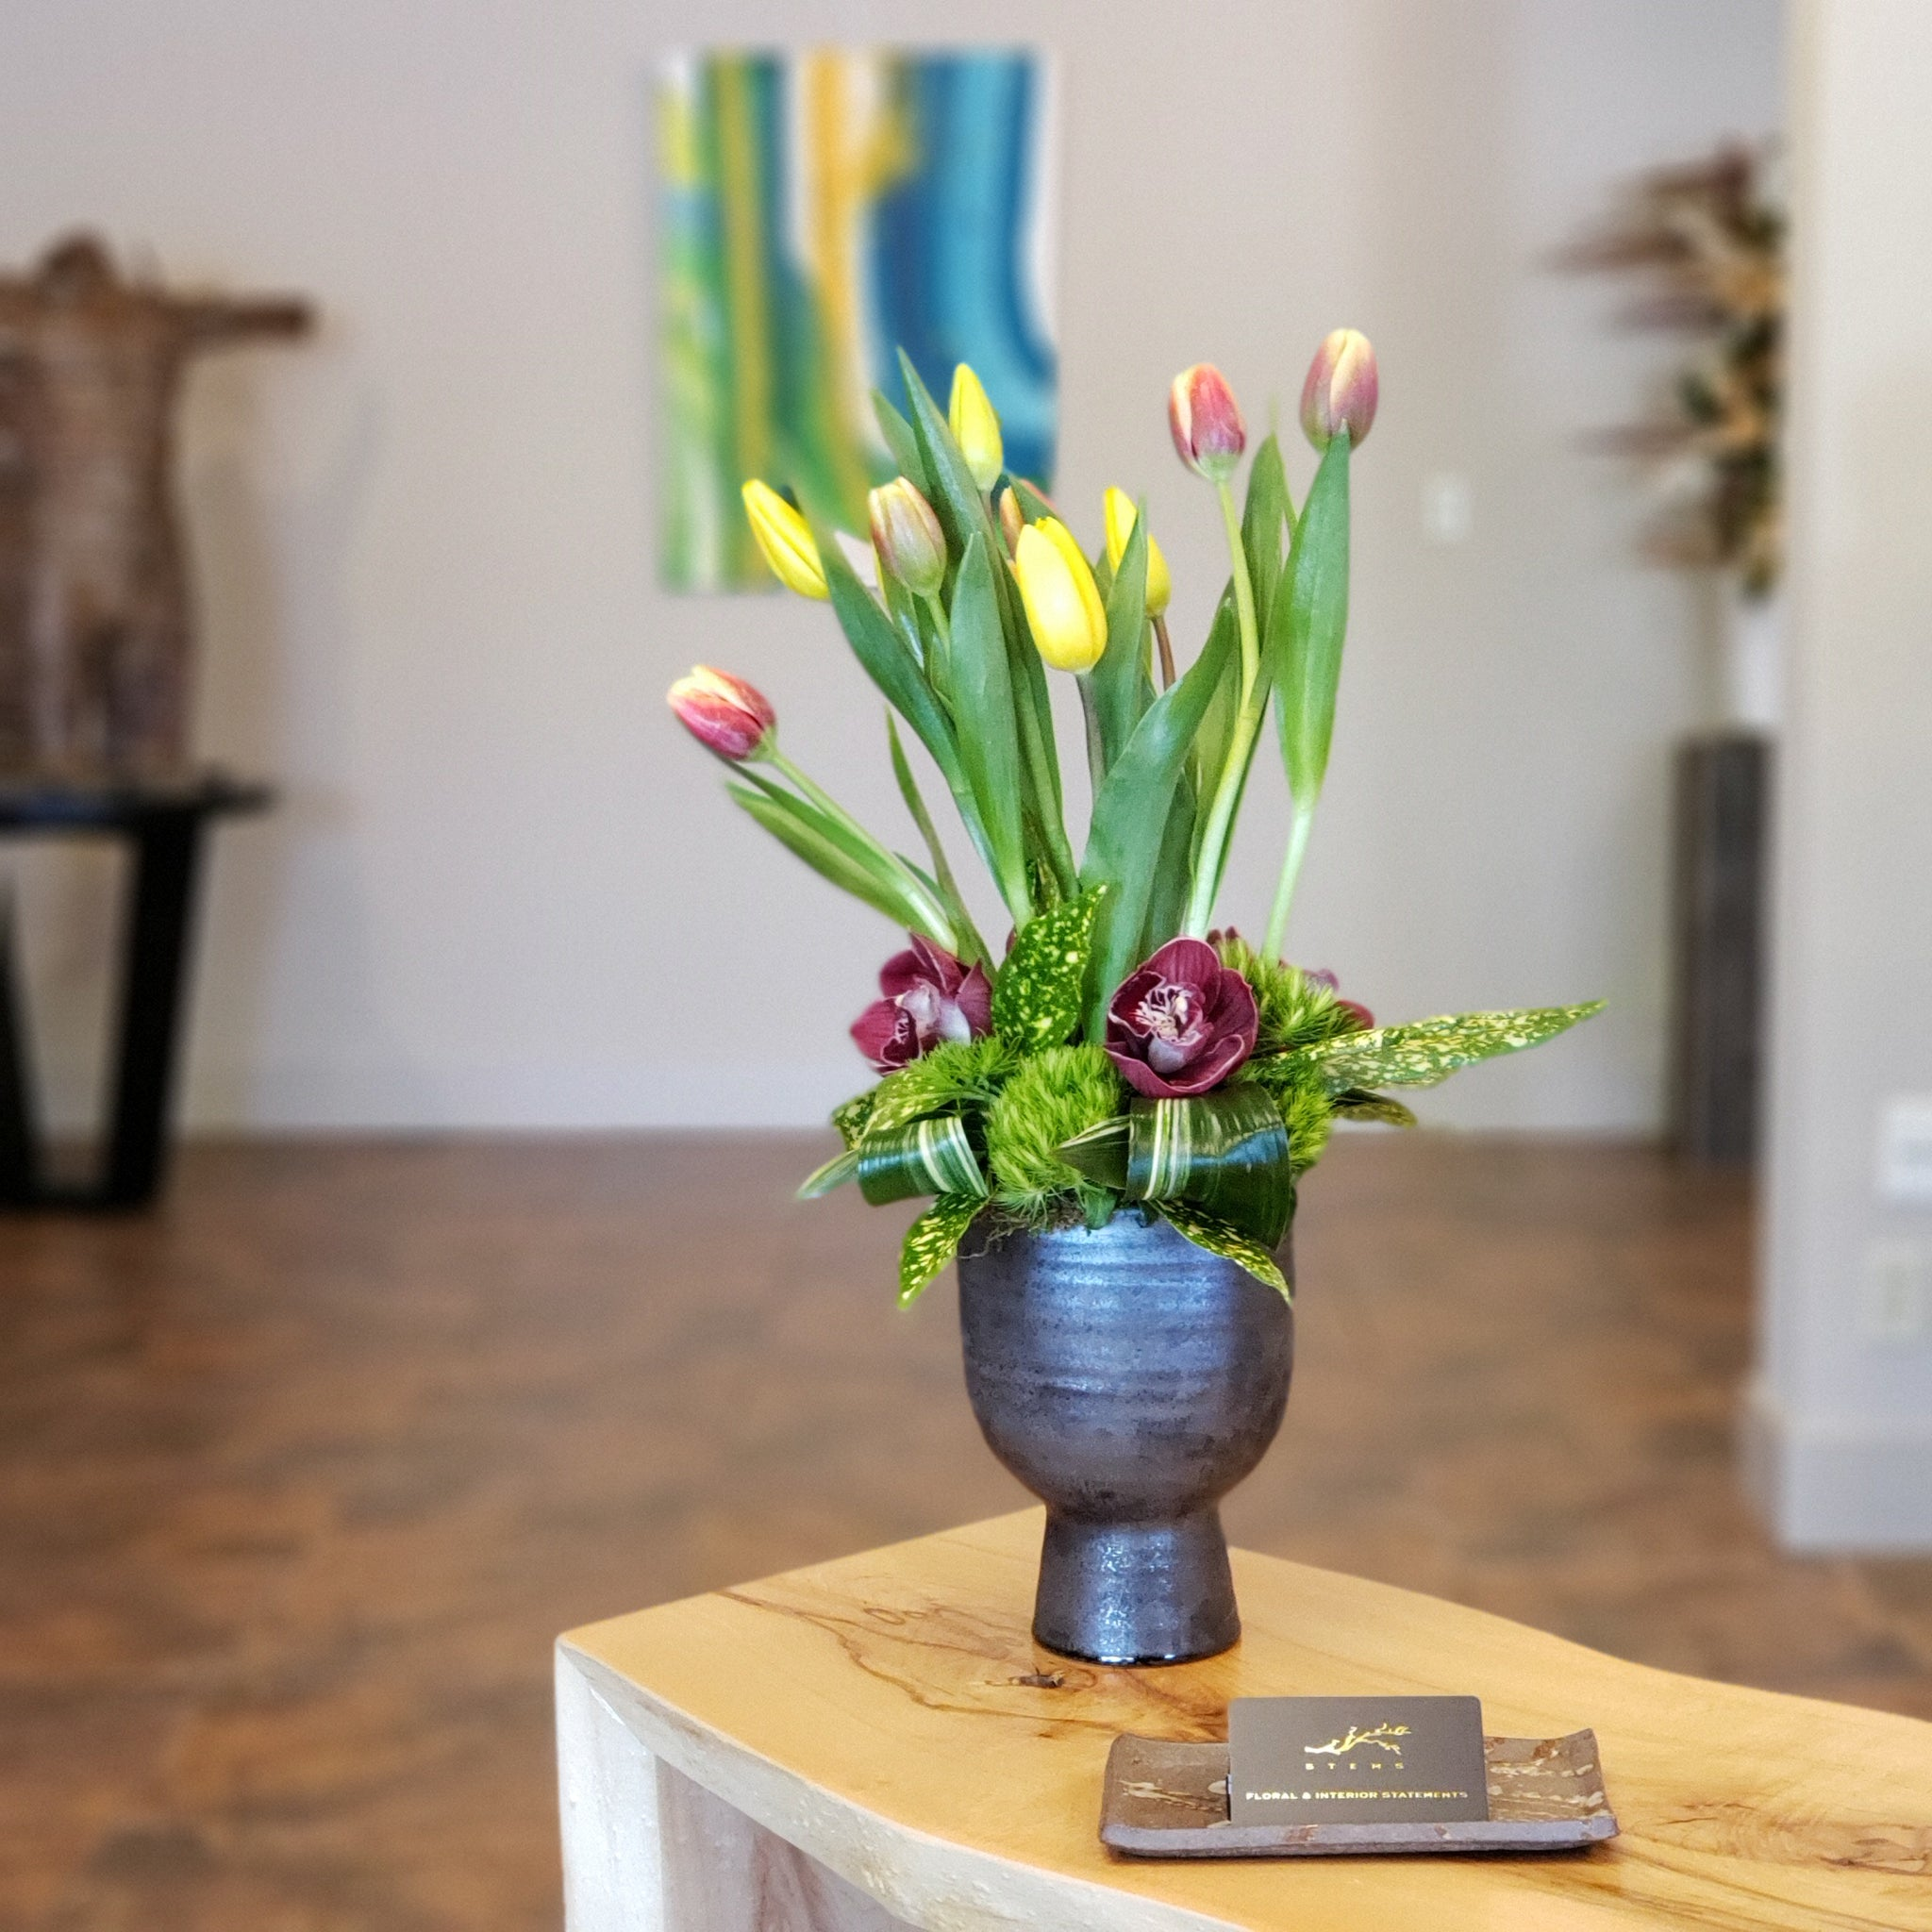 Brimful cymbidiums, 2 bunches of loose tulips, ceramic container